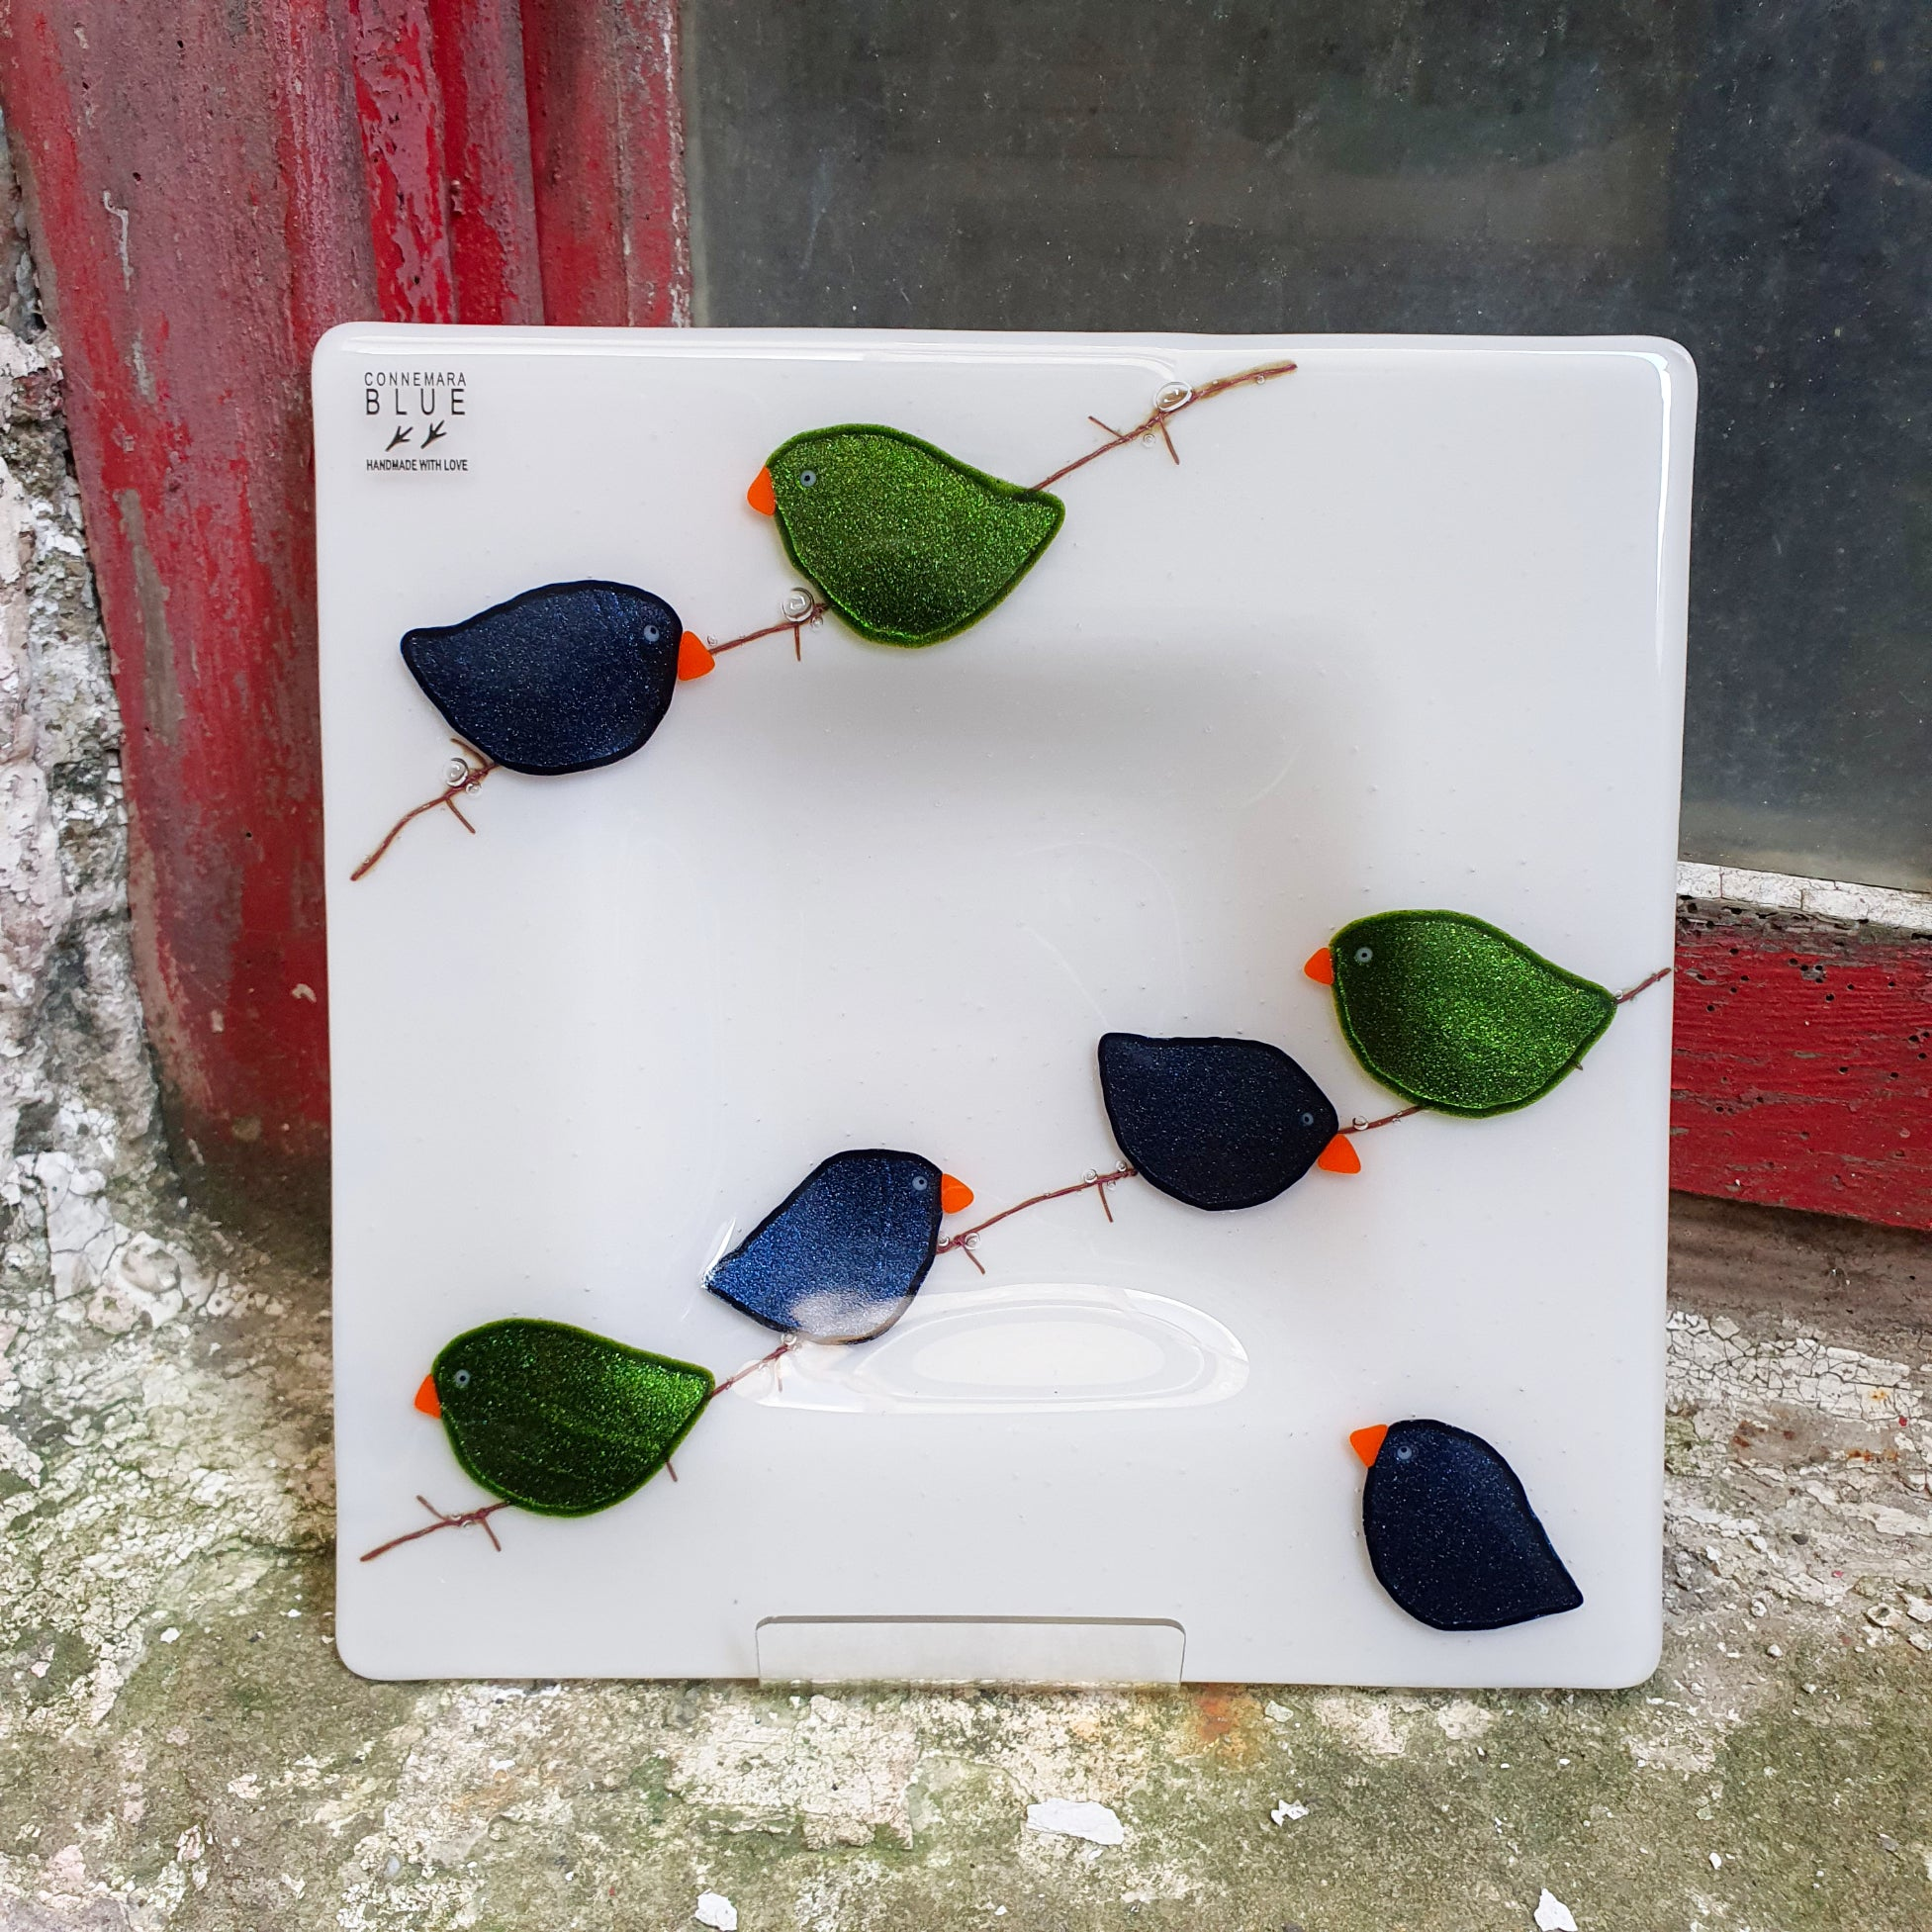 A square fused glass plate featuring glittery green and dark blue birds on a wire, handmade by Connemara Blue